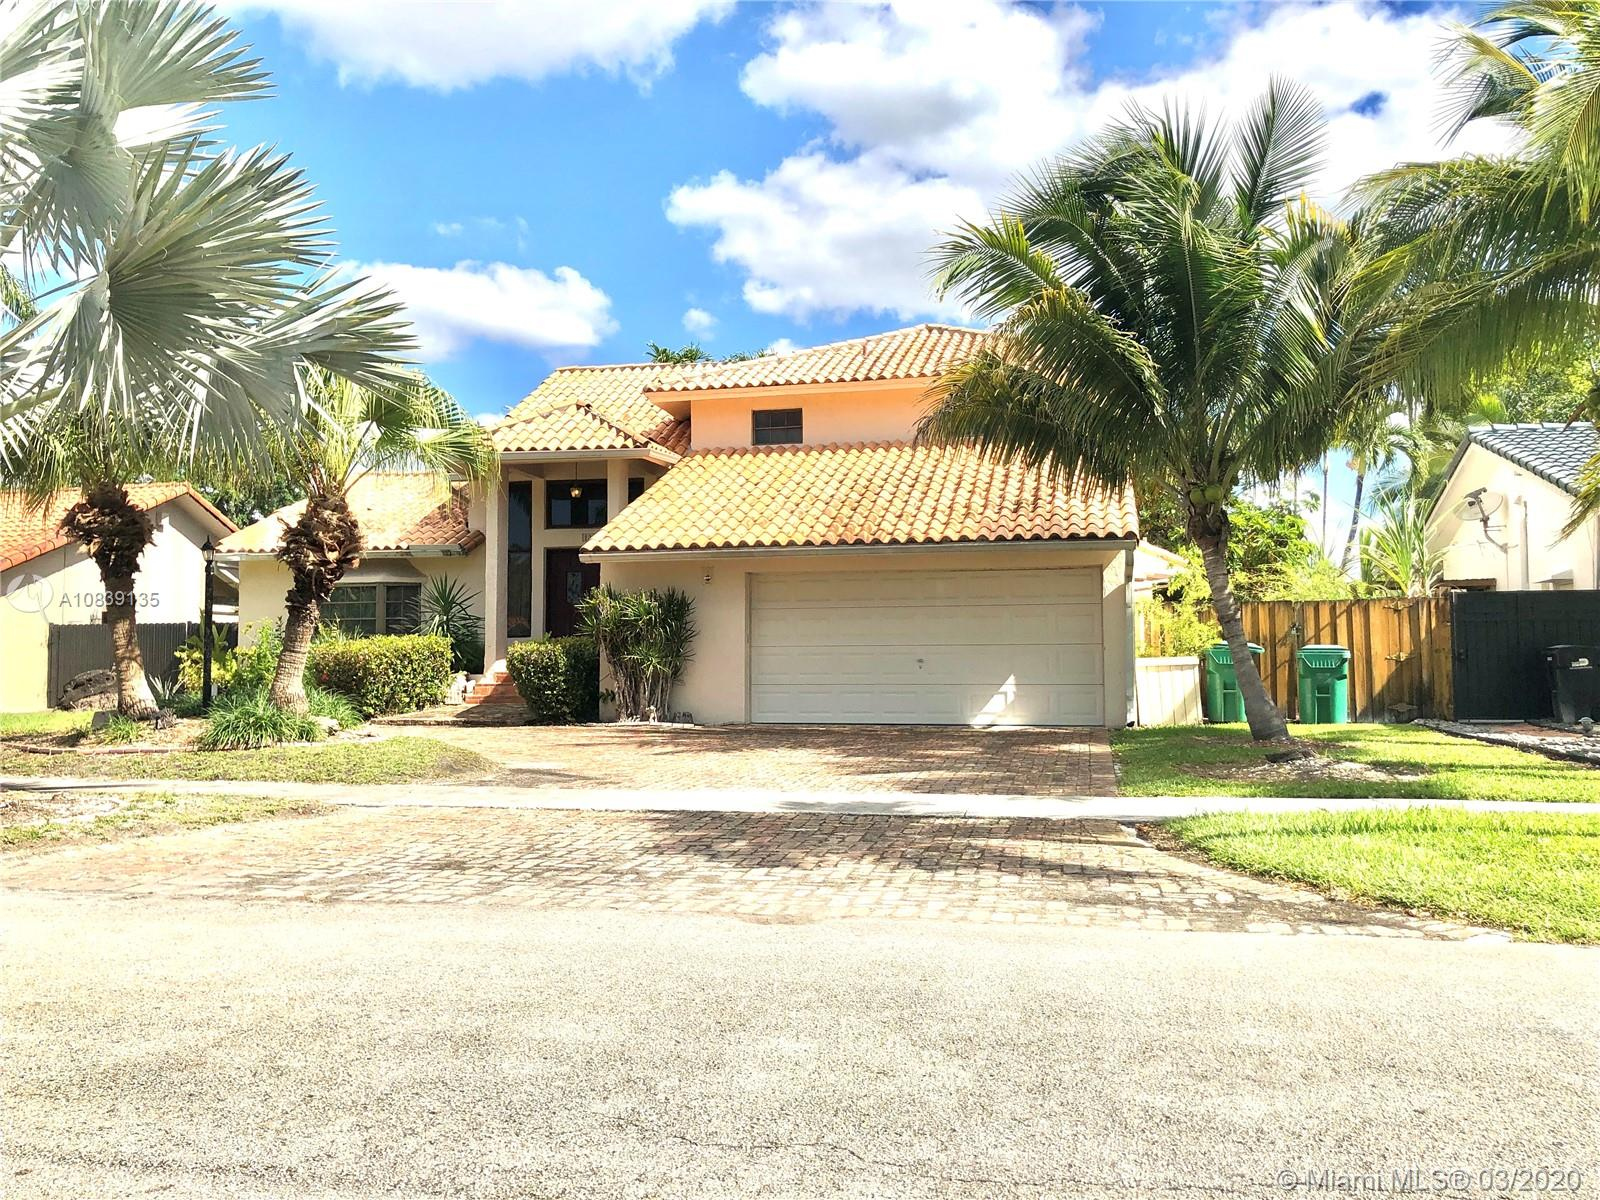 13439 SW 103rd St, Miami, Florida 33186, 3 Bedrooms Bedrooms, ,3 BathroomsBathrooms,Residential,For Sale,13439 SW 103rd St,A10839135